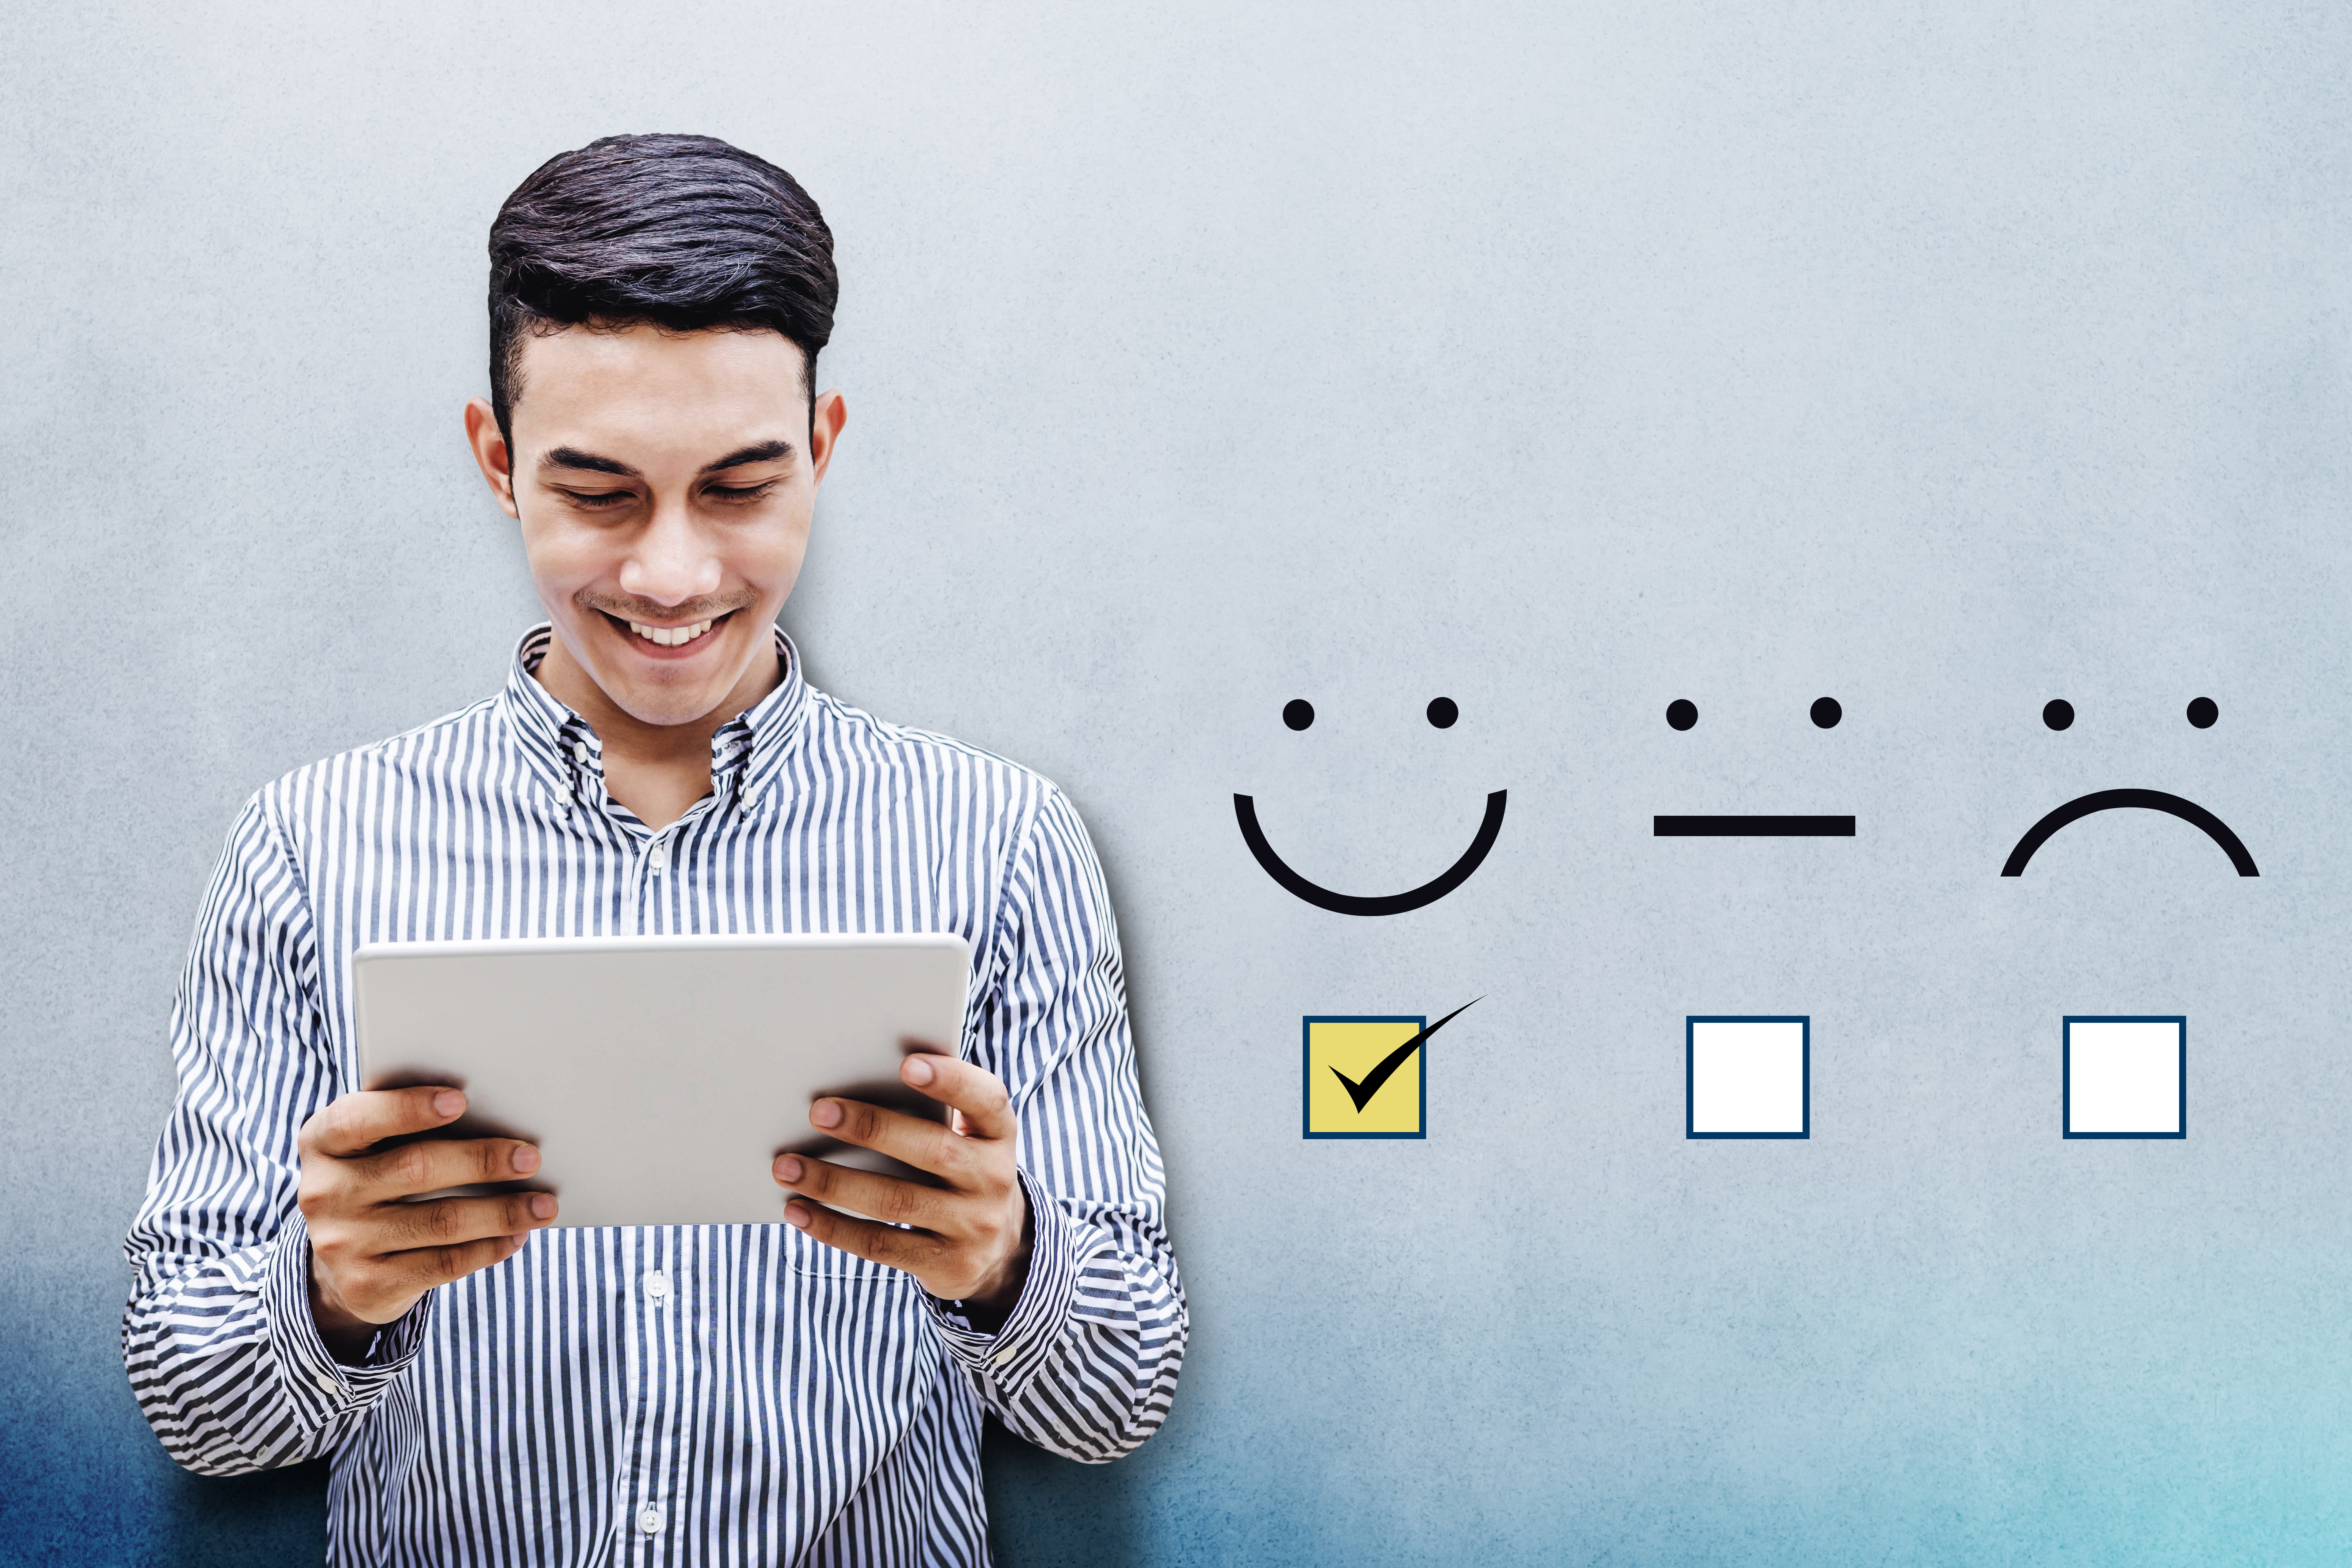 Why We Conduct Customer Satisfaction Surveys